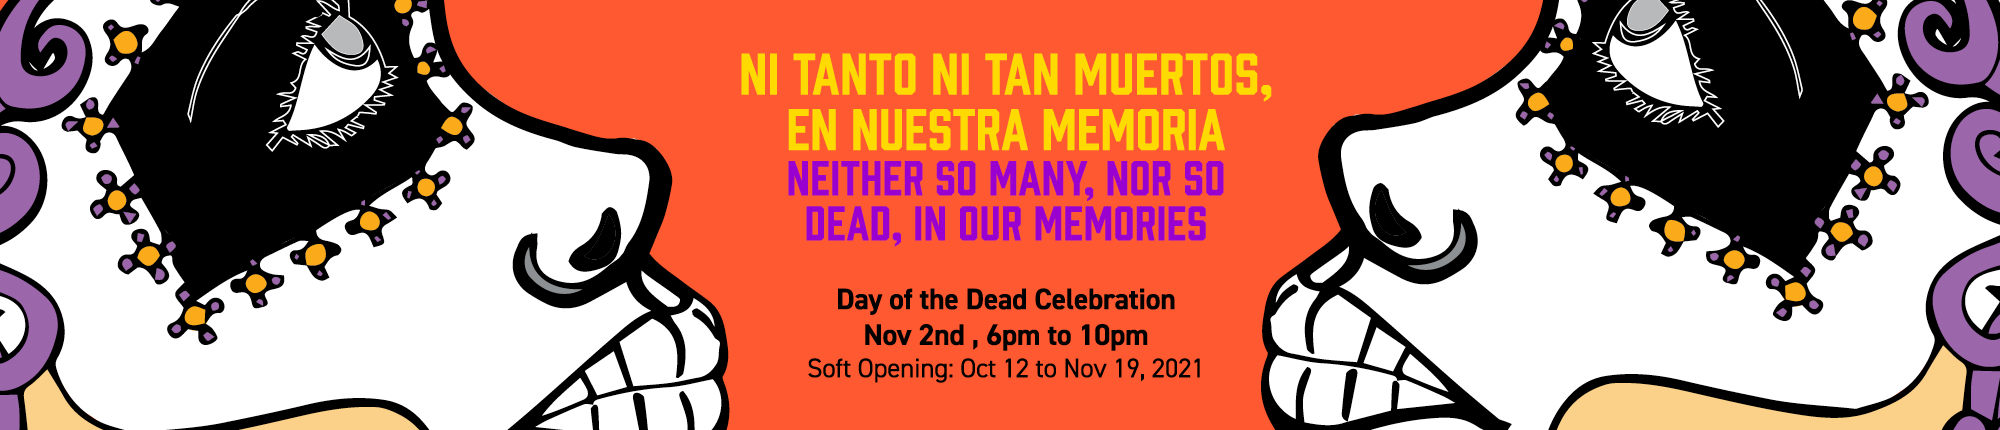 Ni Tanto Ni Tan Muertos, En Nuestra Memoria - Neither So Many, Nor So Dead, In Our Memories Day of the Dead Celebration Nov 2nd, 6 pm to 10pm. Soft opening: Oct 12 to Nov 19, 2021